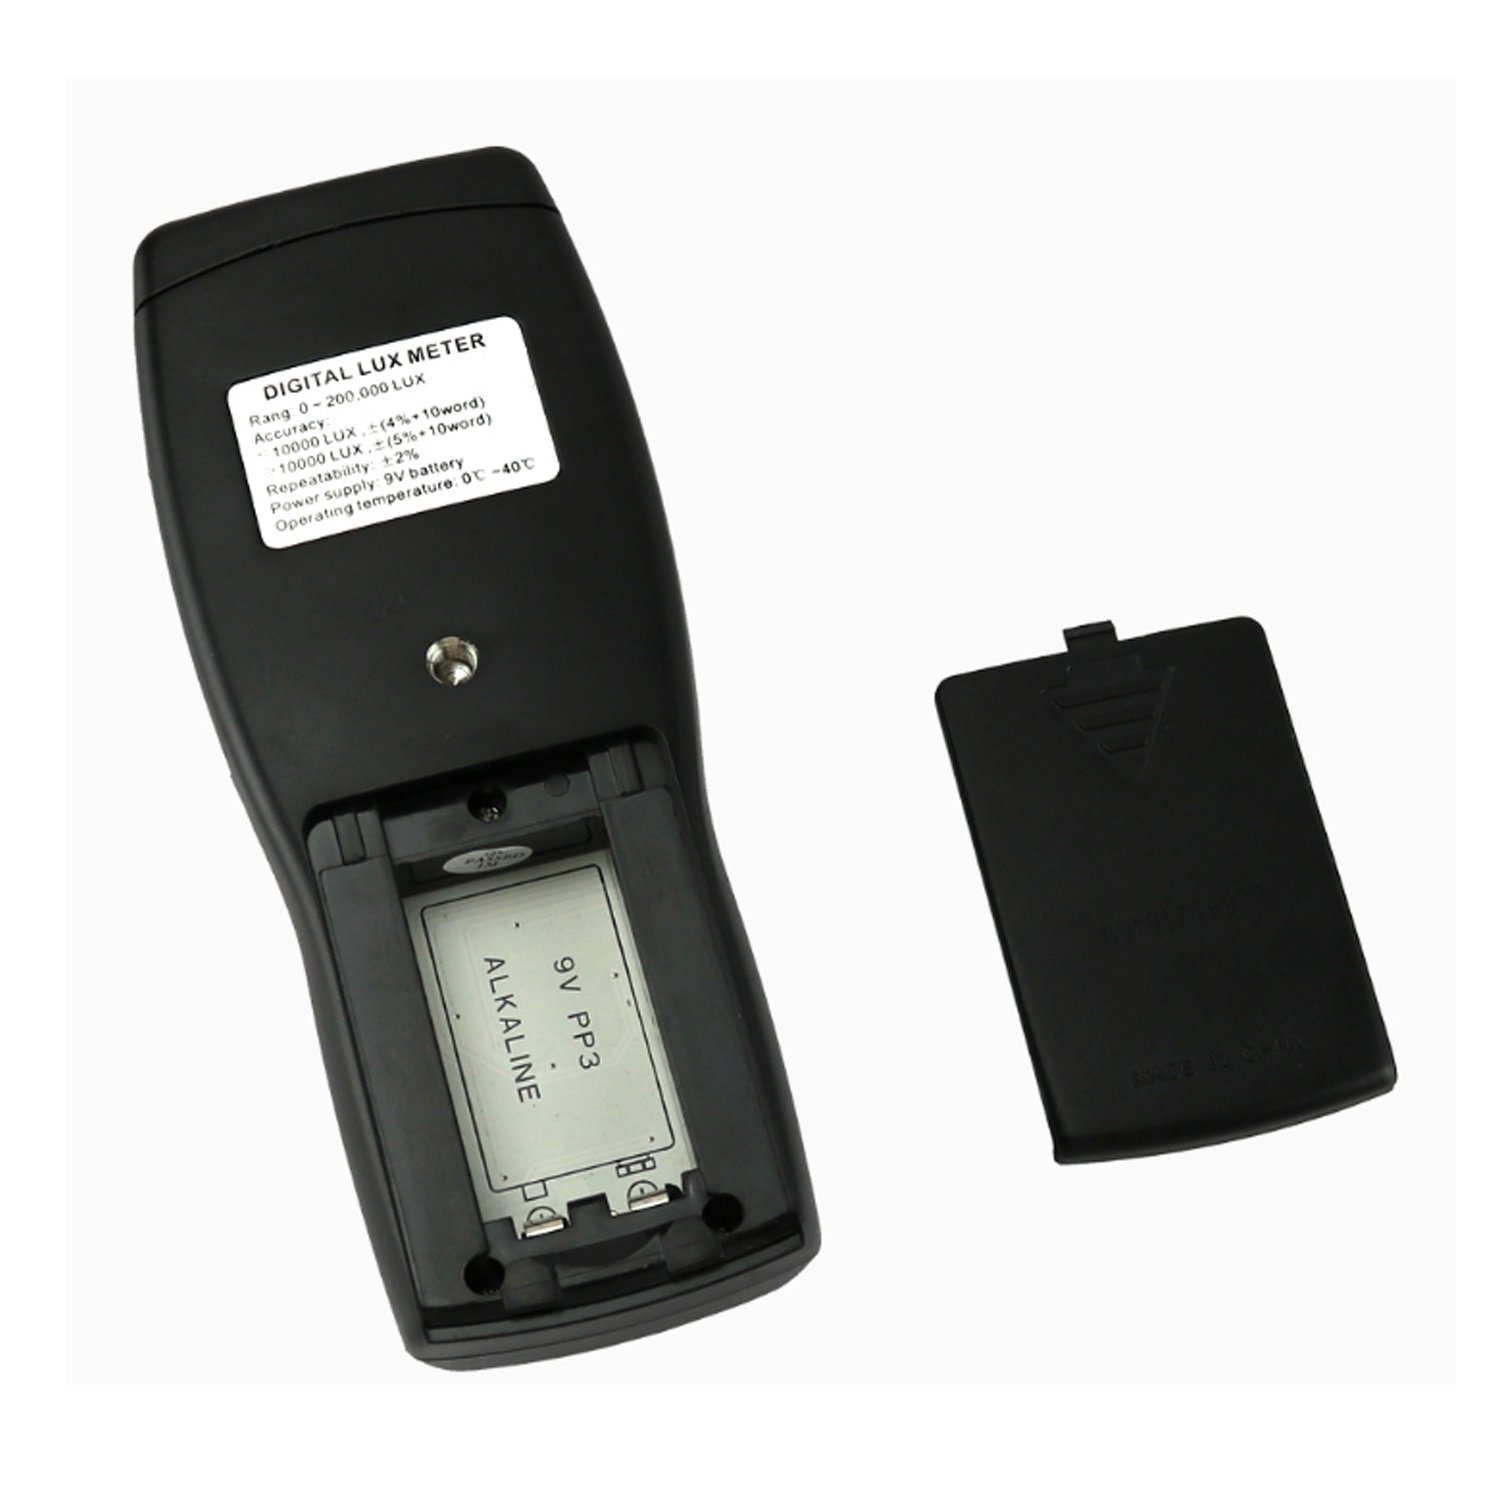 Digital Luxmeter Digital Lux Meter Photometer Illuminometer Spectrometer Spectrophotometer High Precision Light Meter 200,000lux AS823 Digital LCR Meter by YUHUA-Digital Multimeter (Image #5)